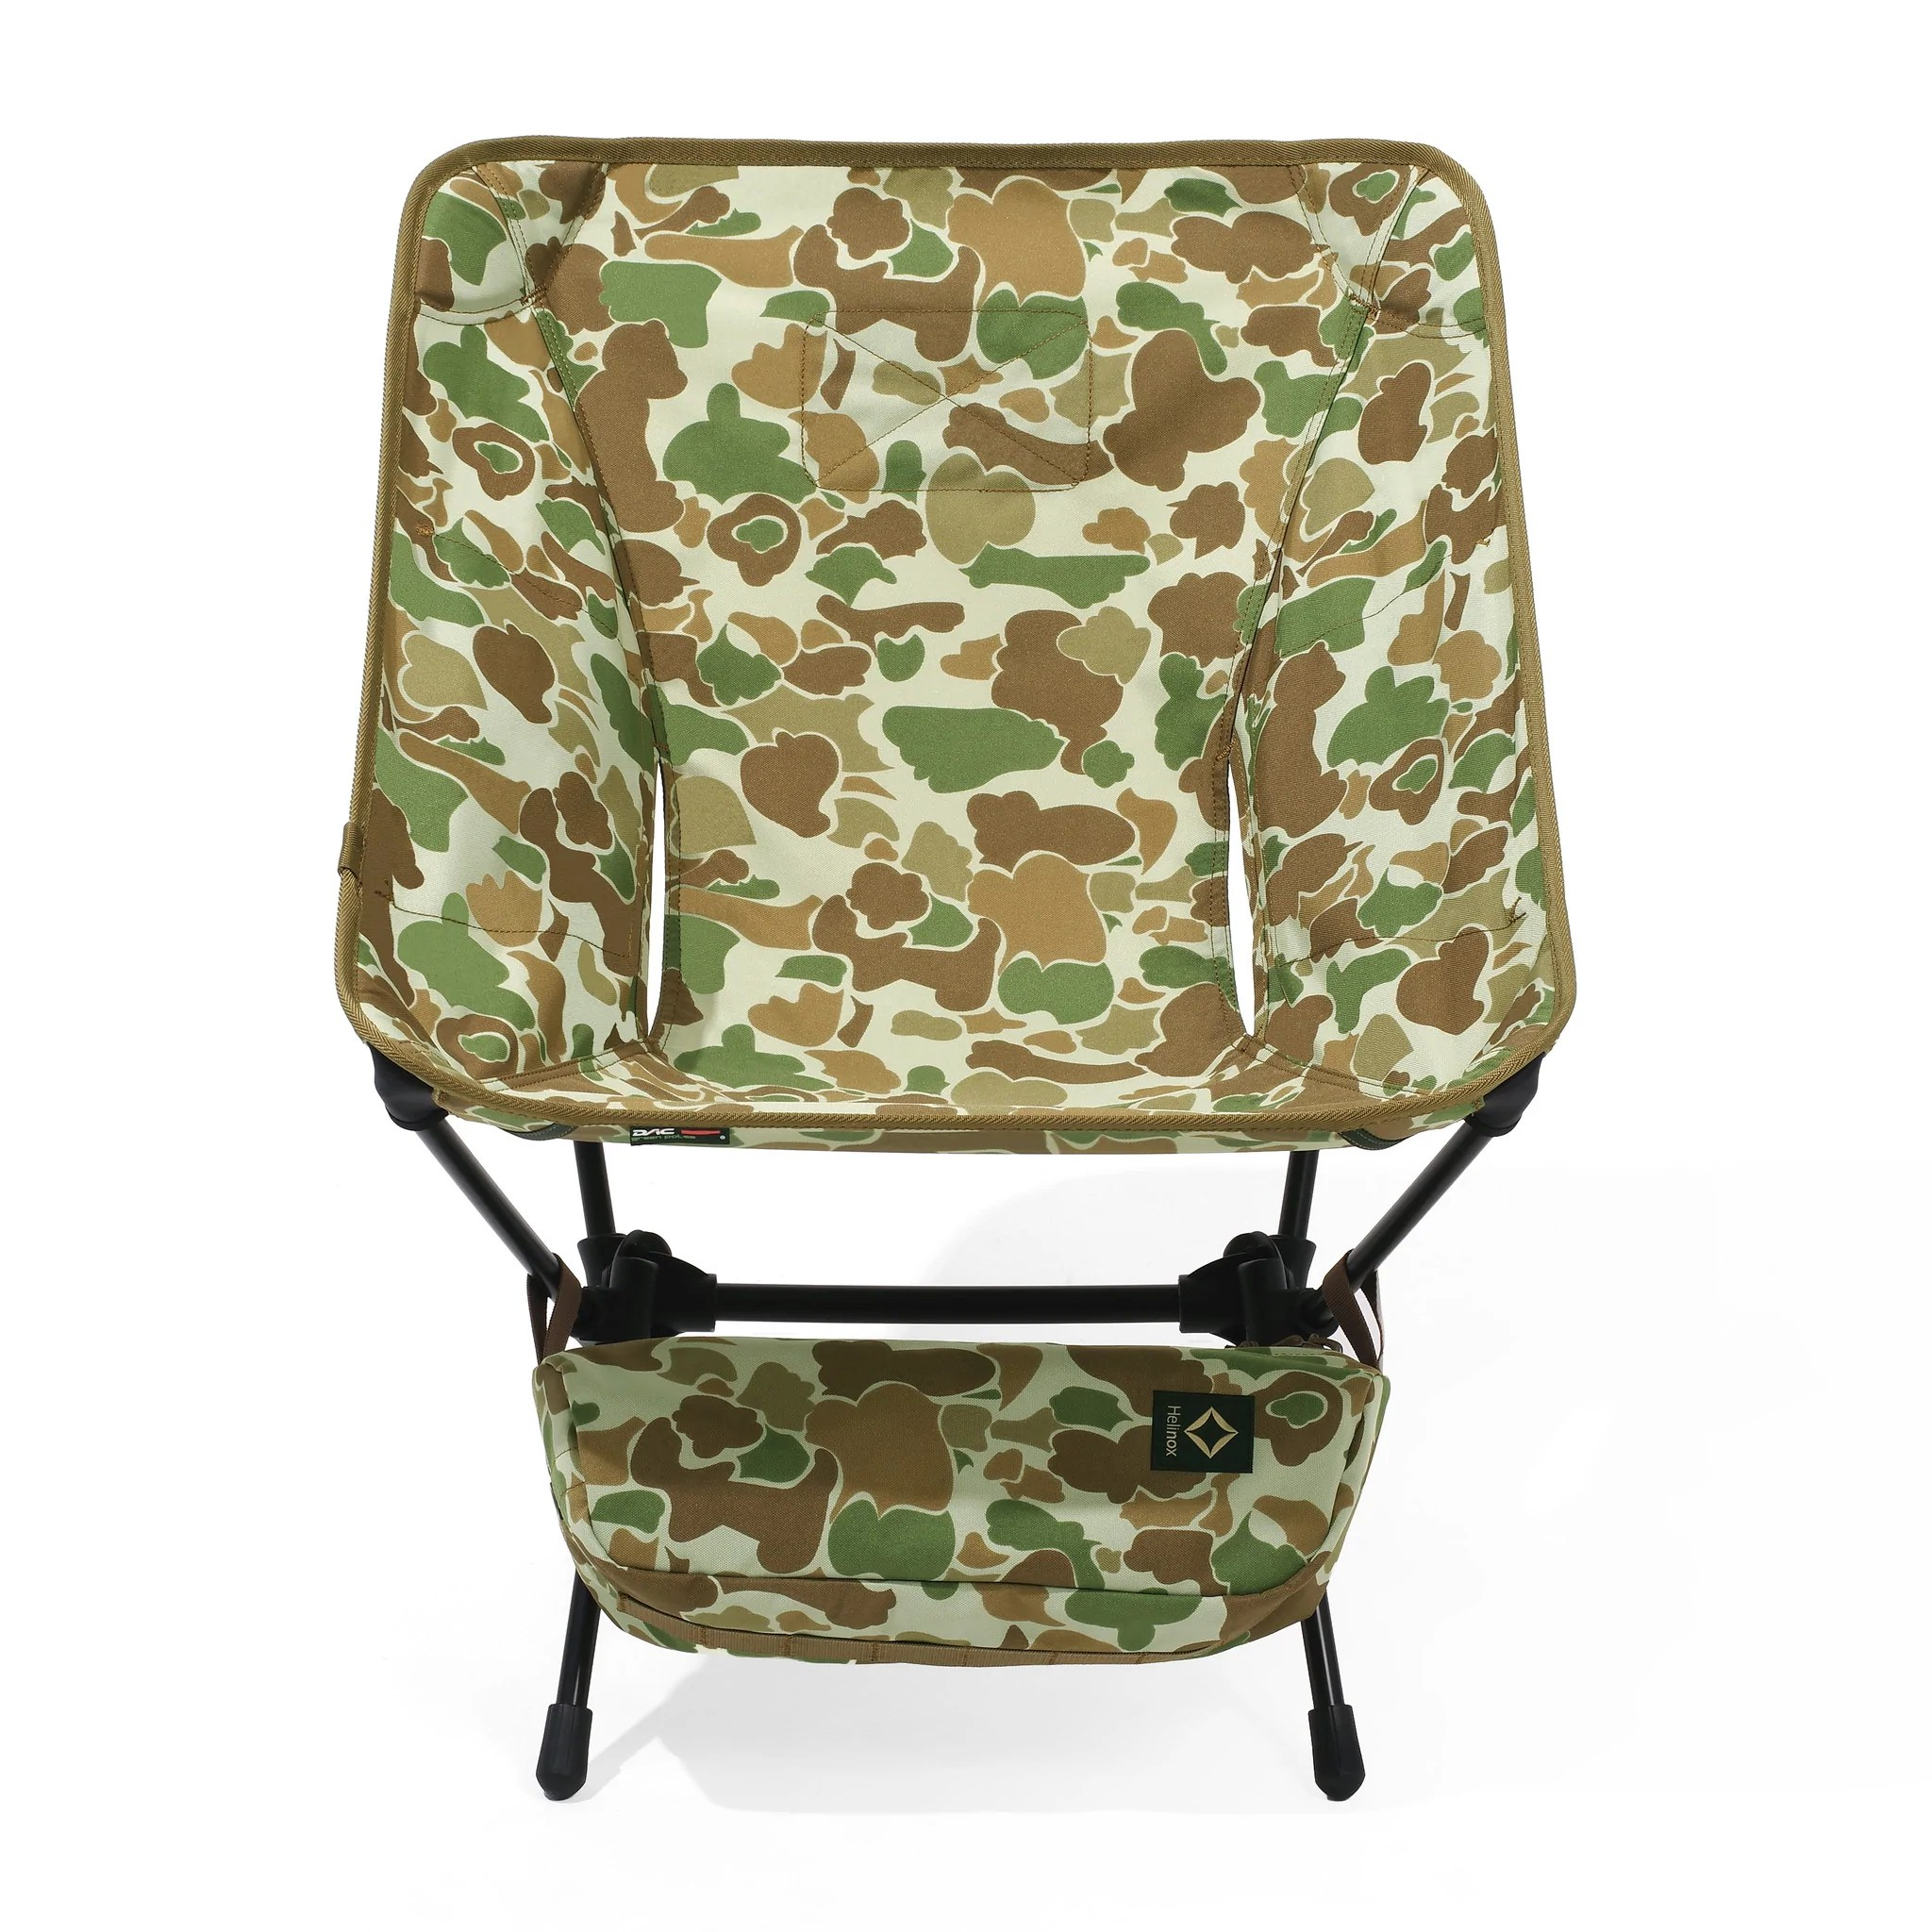 predator hunting chair living room accent chairs with ottomans tactical duck camo  helinox